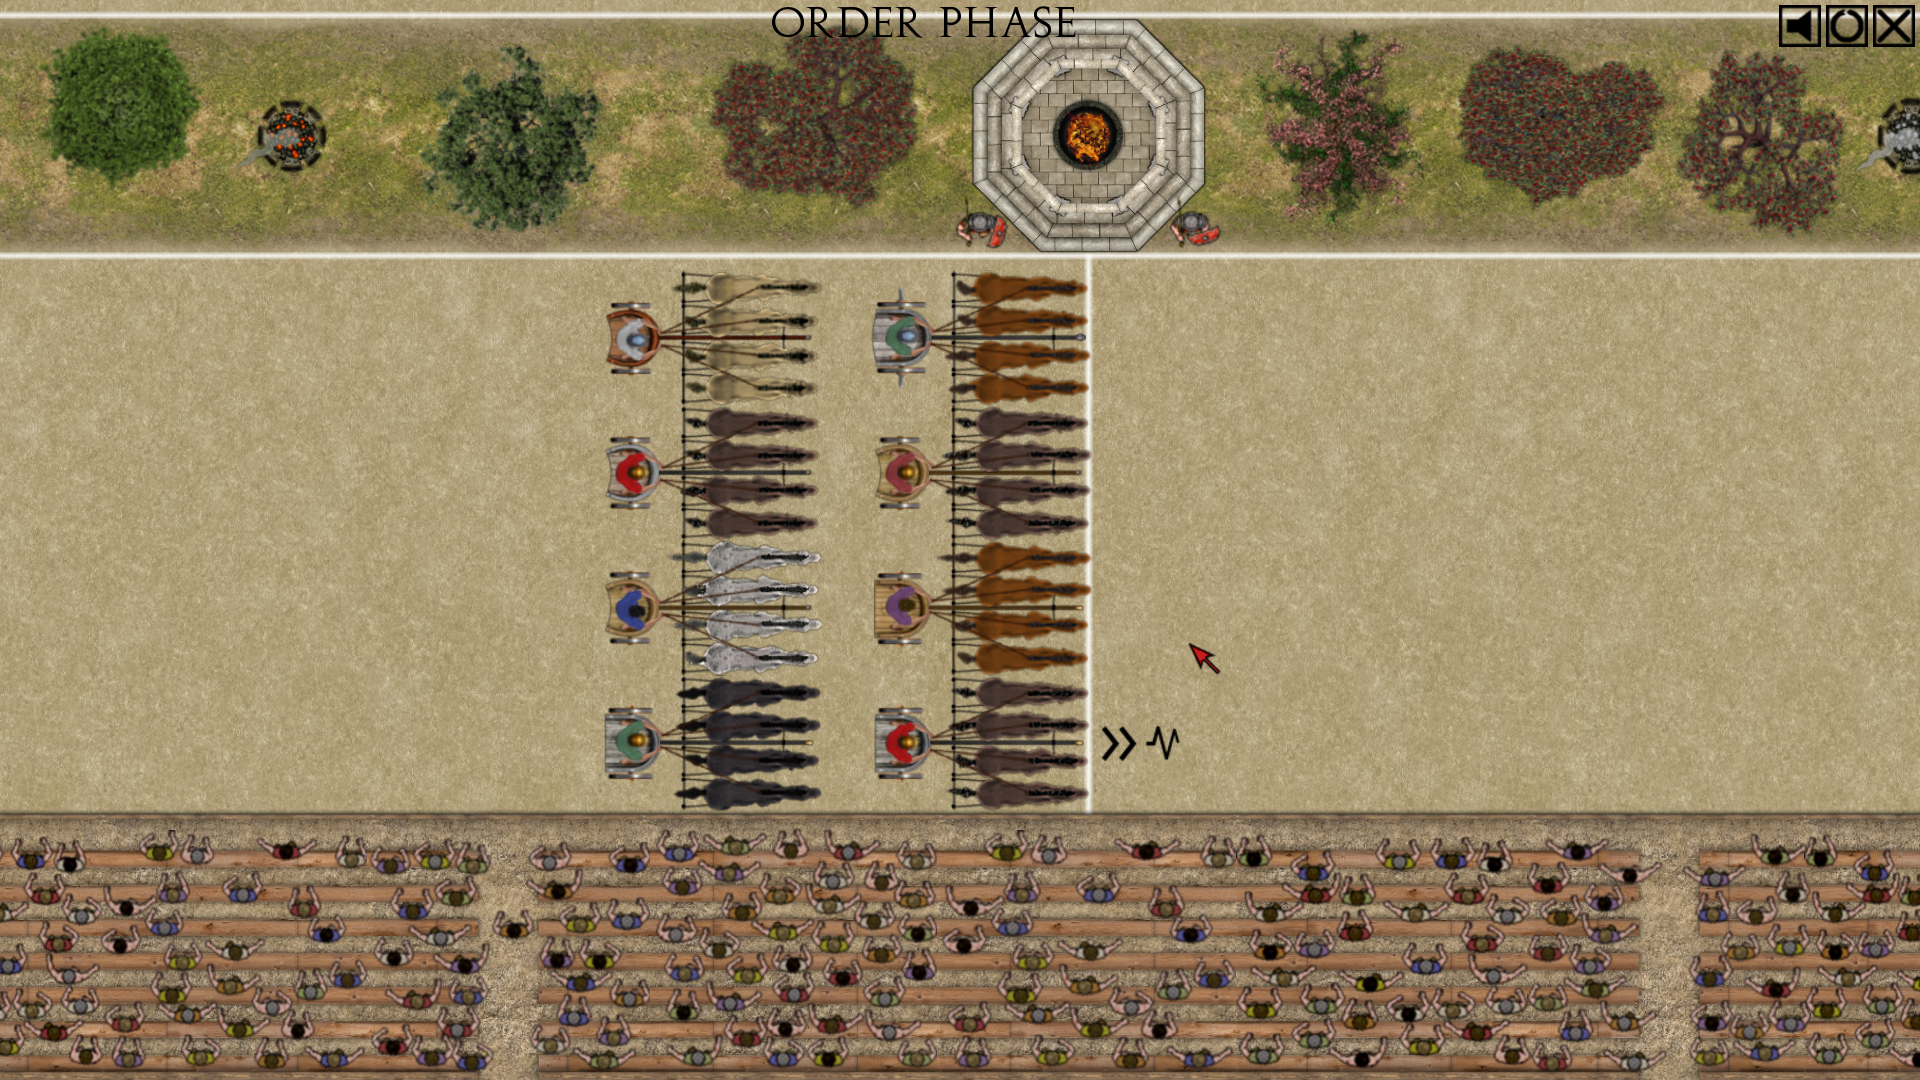 Brutal turn-based chariot racing game Qvadriga has galloped onto iPad and Android tablets